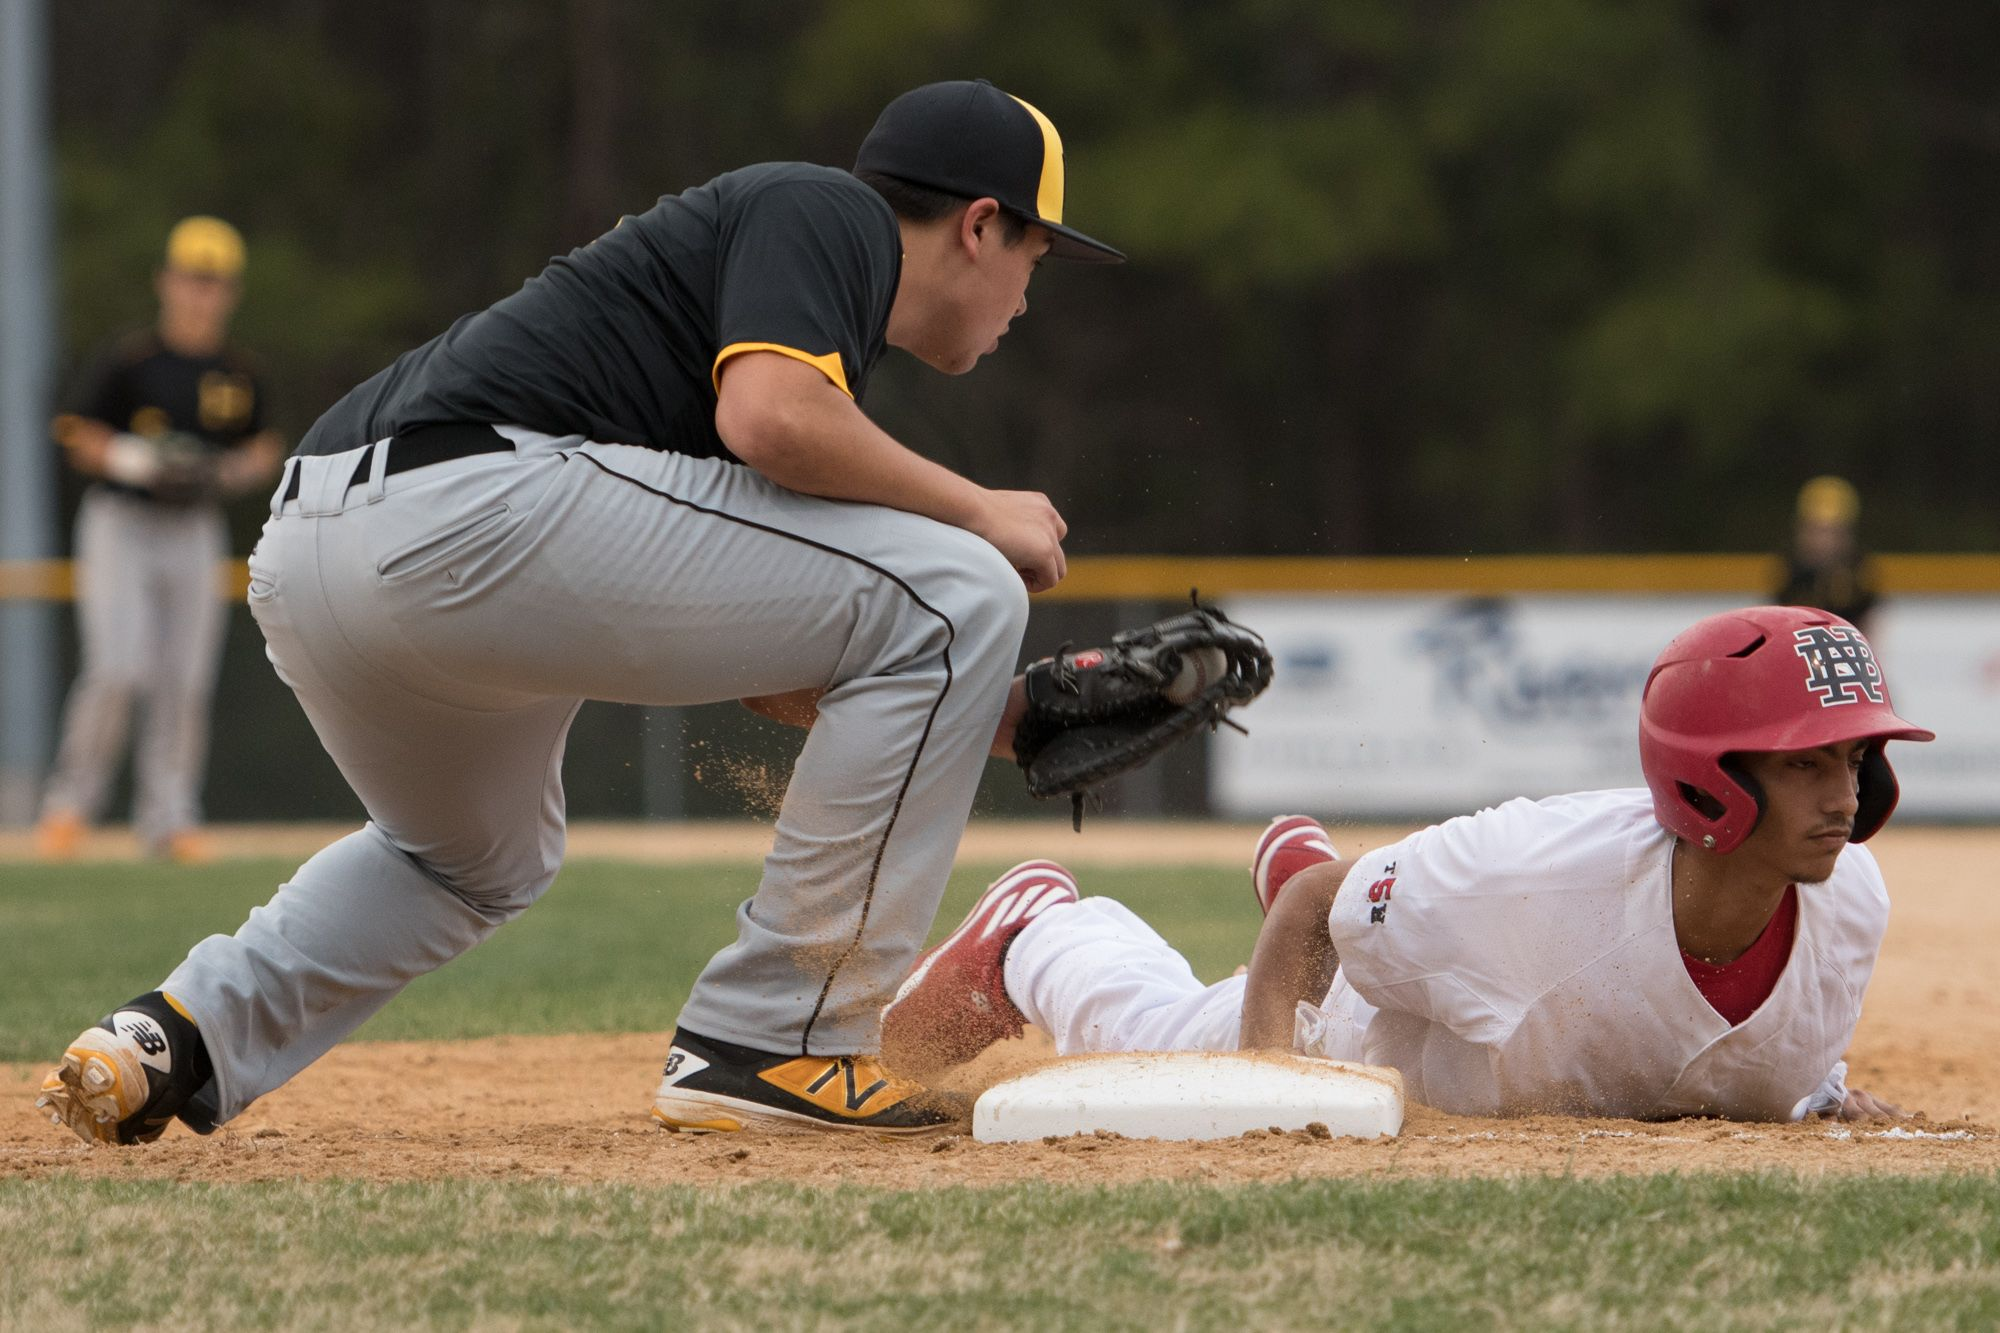 Havelock S Grant Callaway 17 Tries To Tag Out New Bern S Jaren Vizcarrondo 13 At At First Base During A Baseball Game At New New Bern Baseball Games Sports